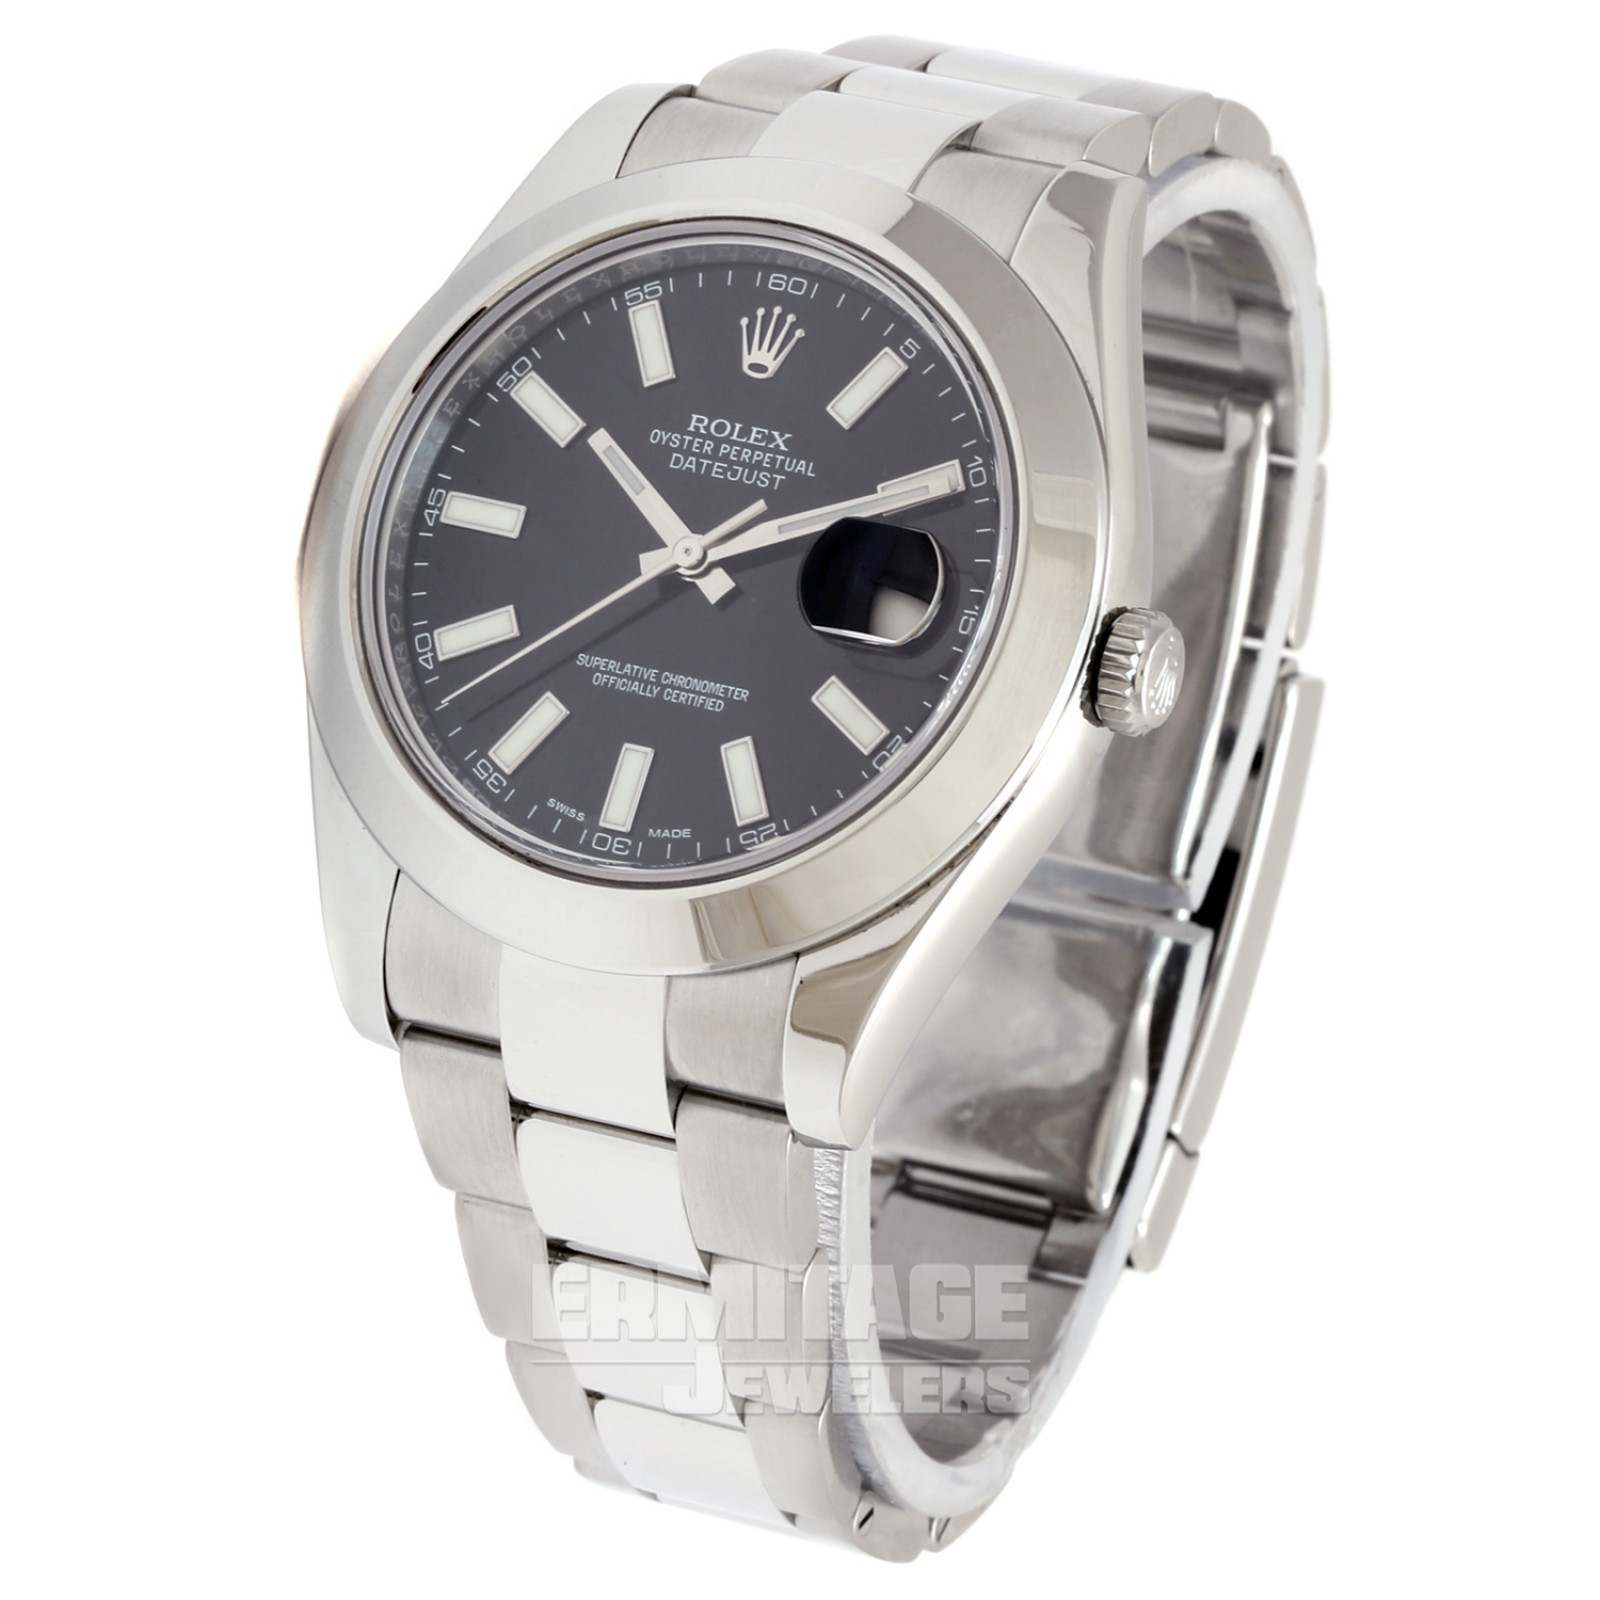 Pre-Owned Stainless Steel Rolex Datejust 116300 with Black Dial